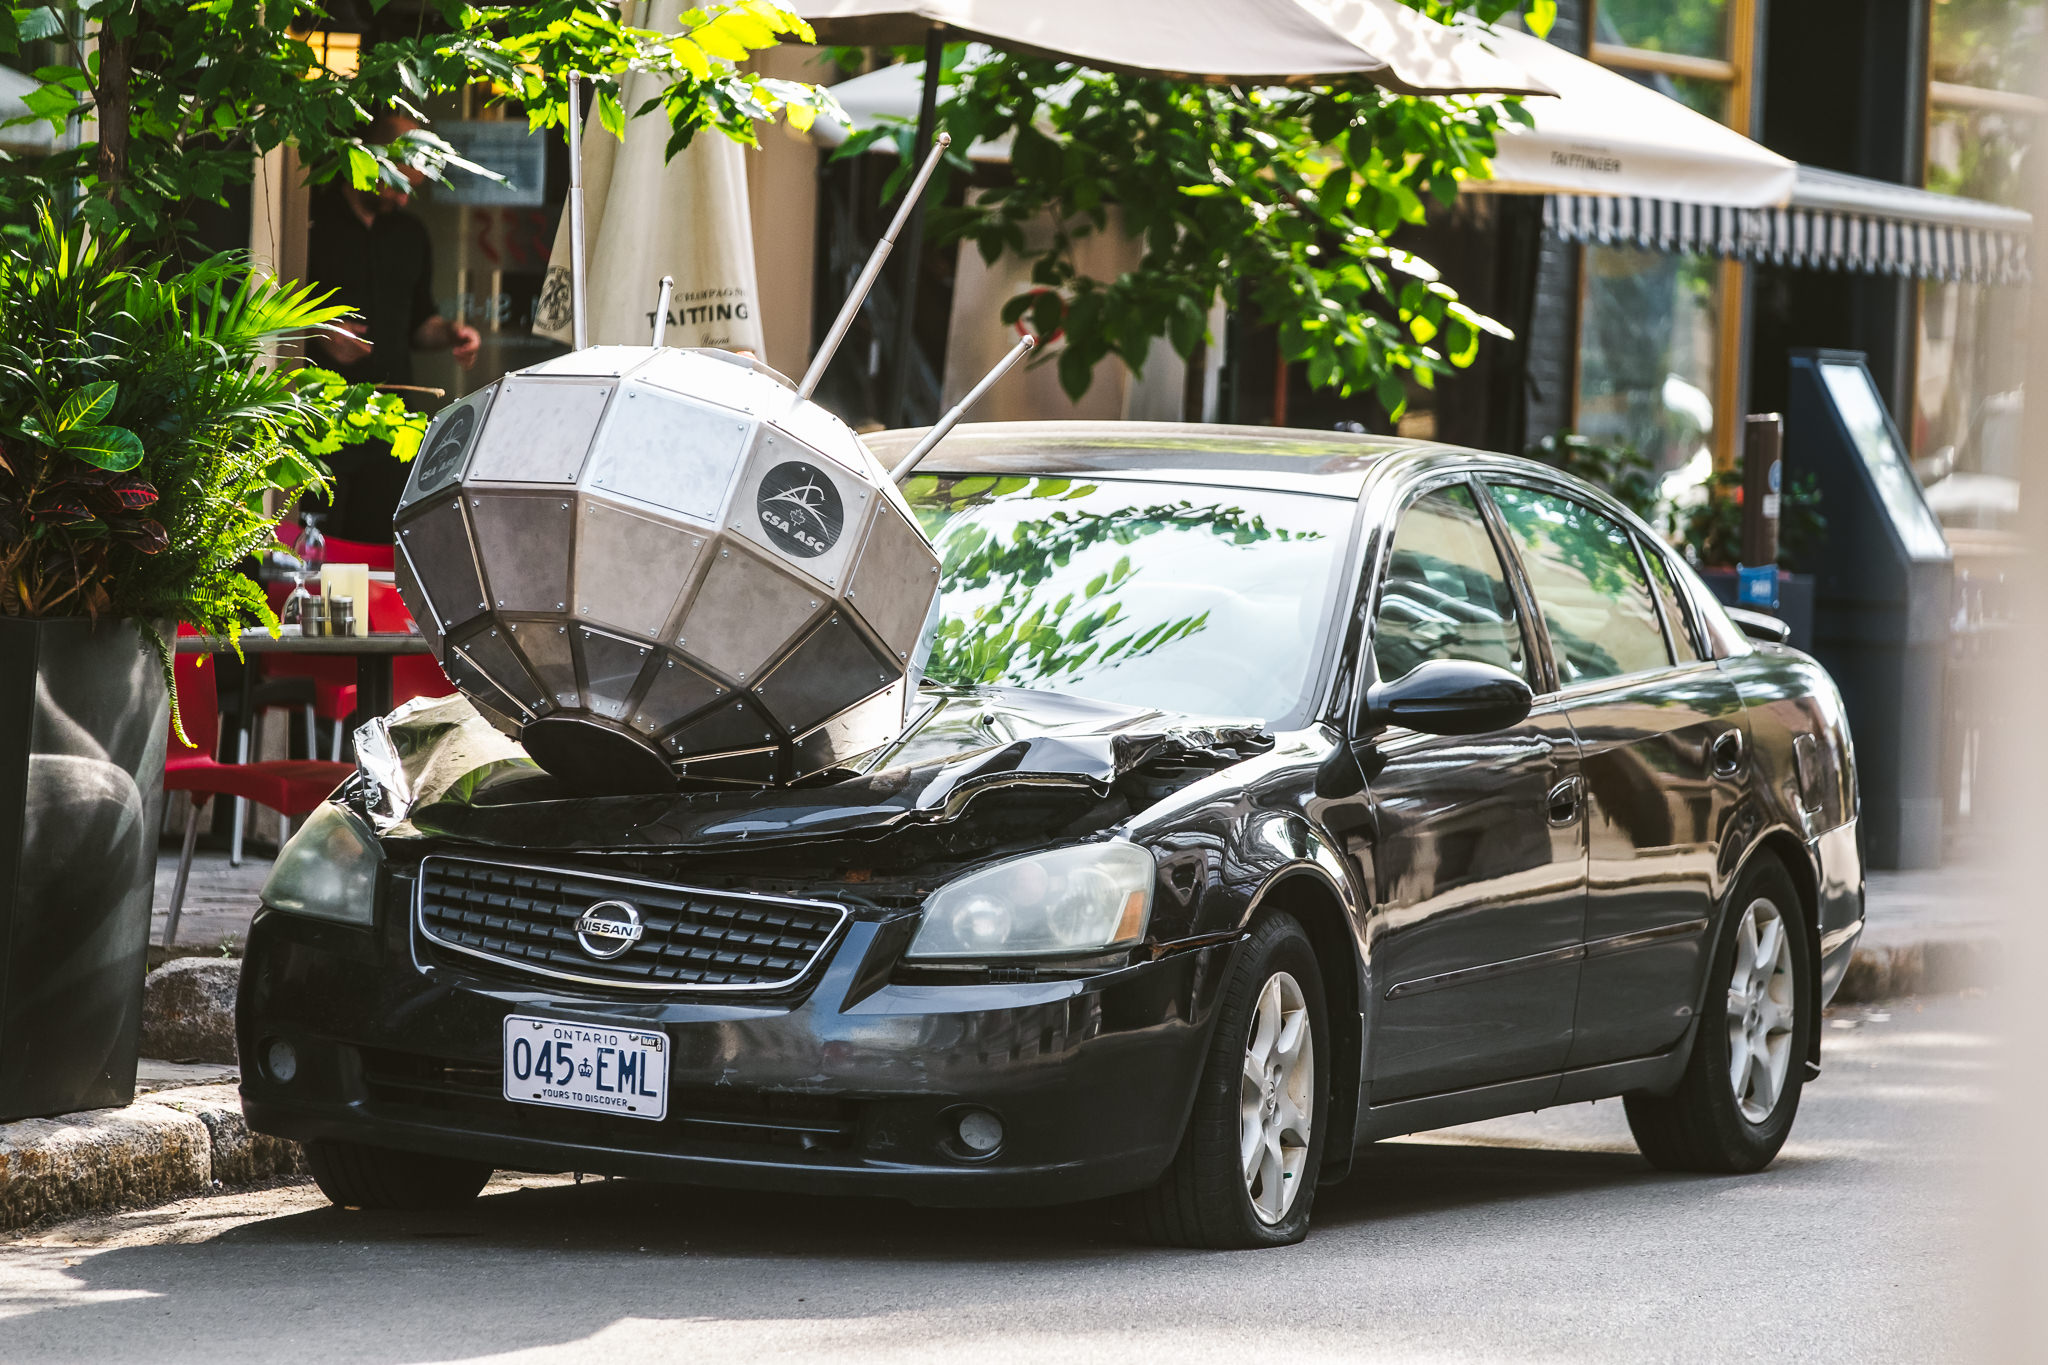 image of a black car parked on a street with a small satellite crushing the car hood.